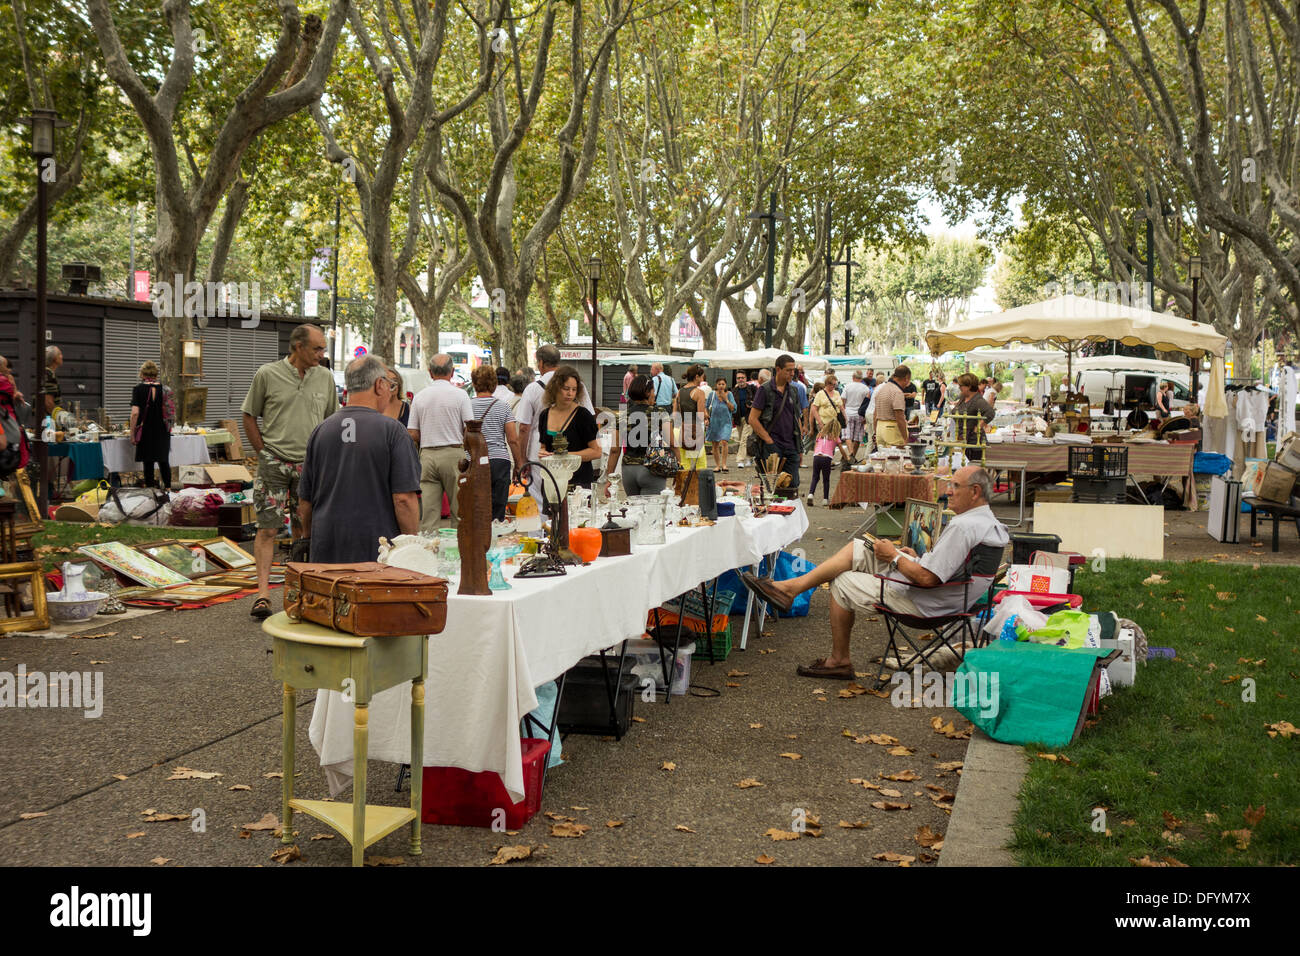 street brocante antique market on the Promenade des Platanes in downtown center of Perpignan, Pyrenees Orientales; Roussillon; France - Stock Image